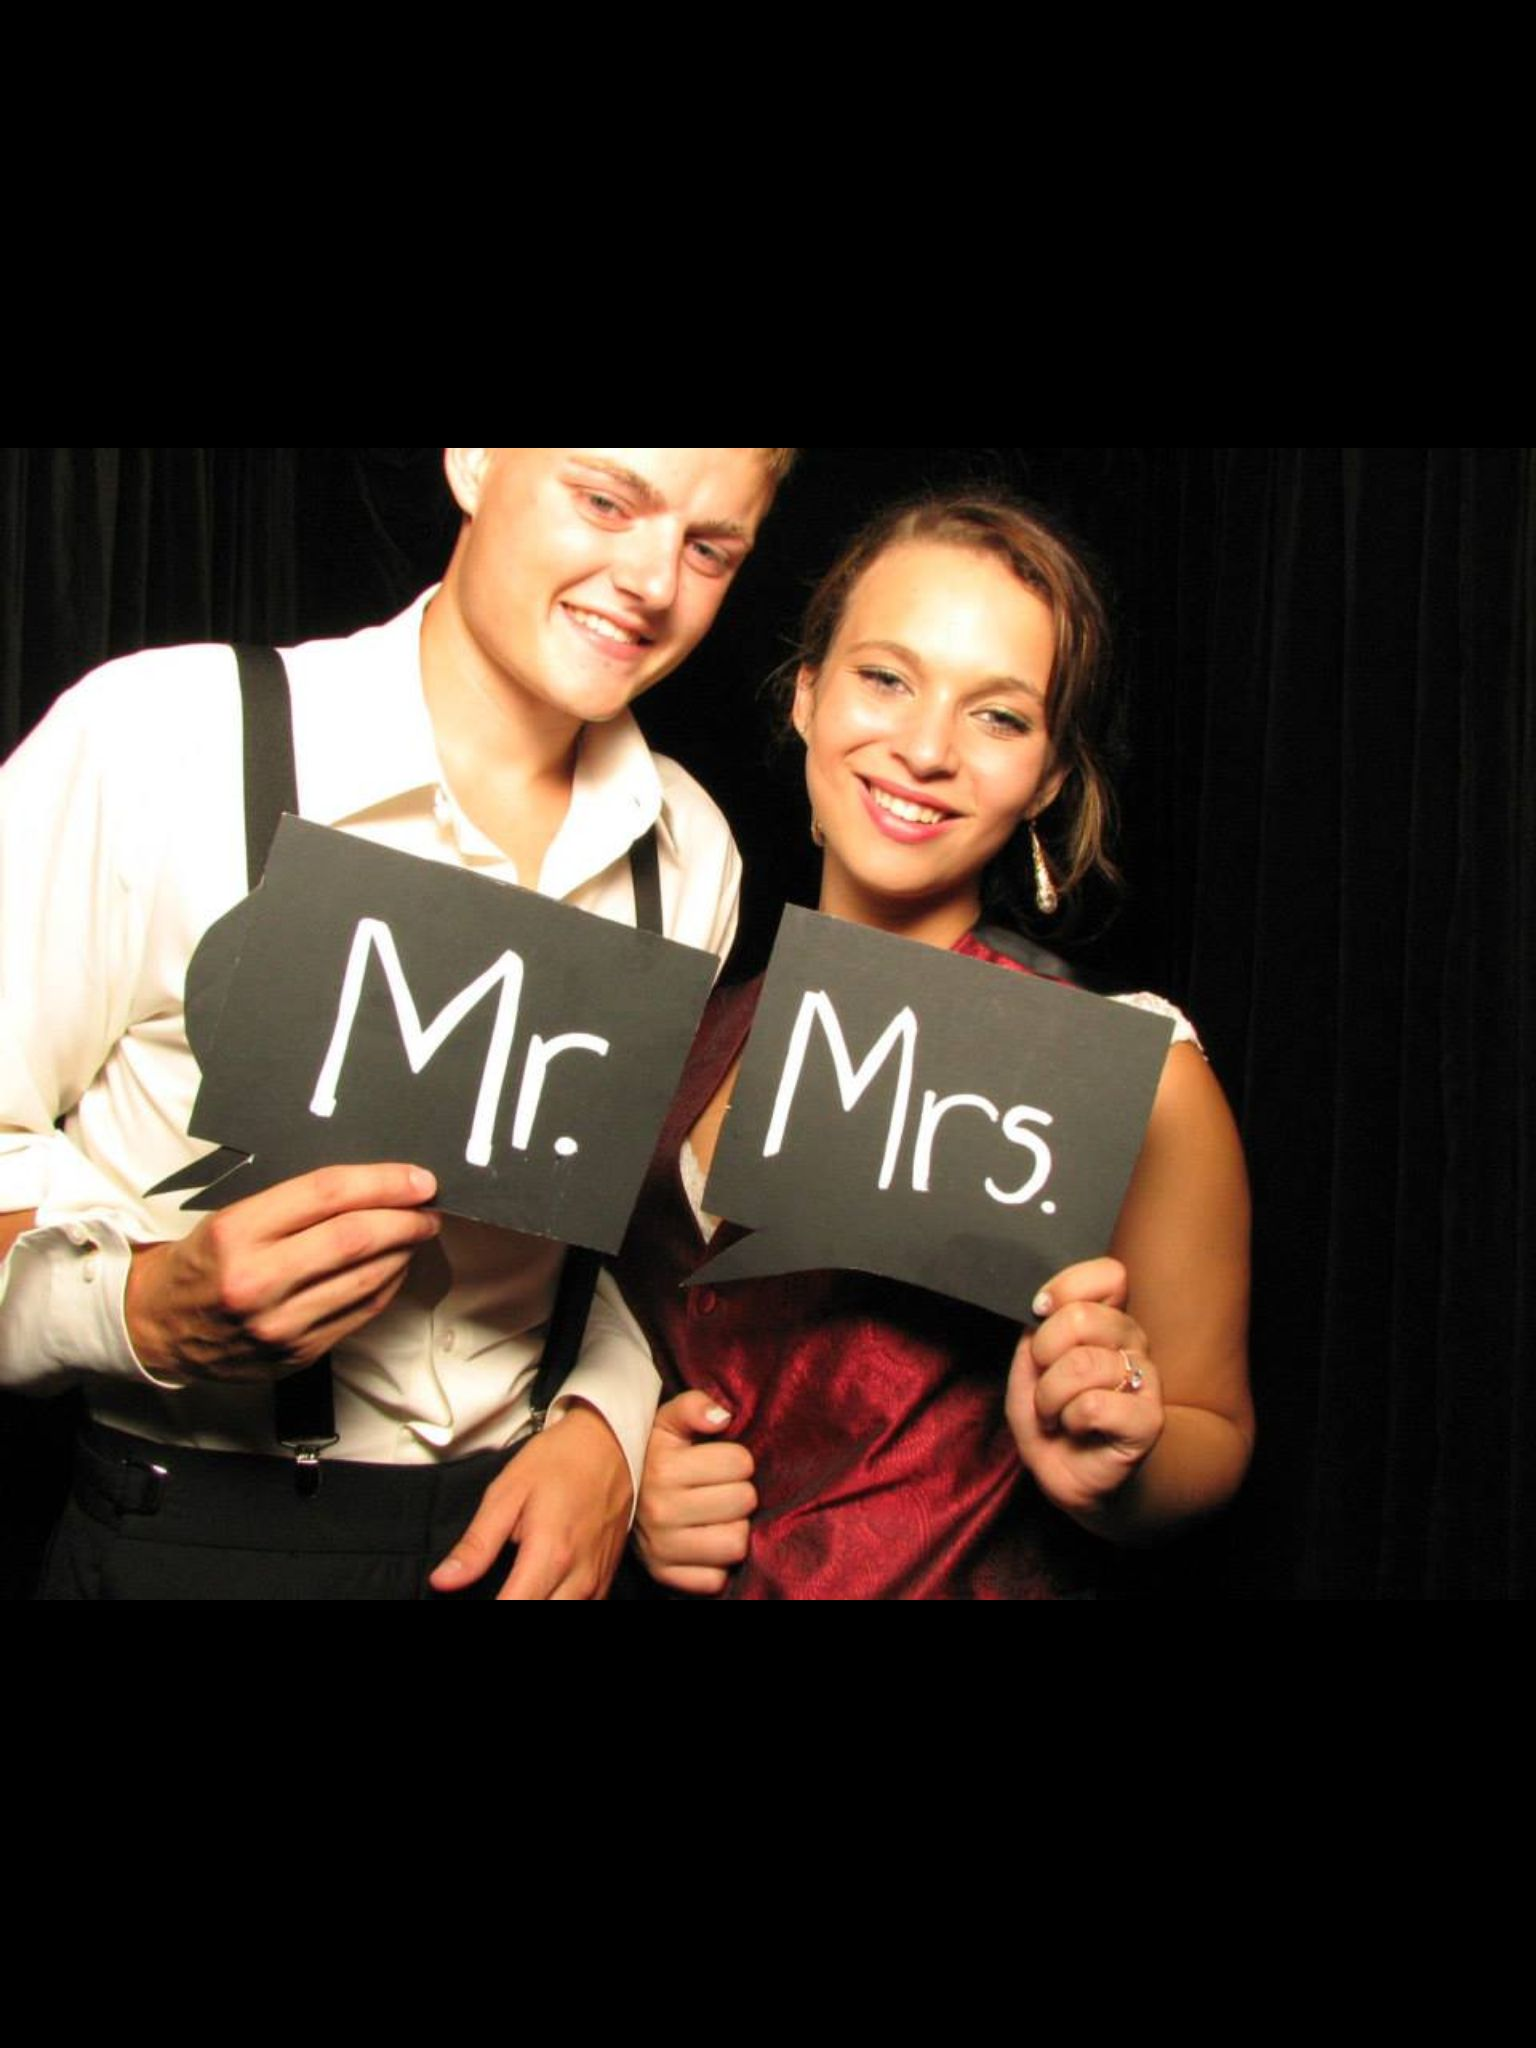 Photo booth is so fun. Made our own signs and props. Wedding photo booth